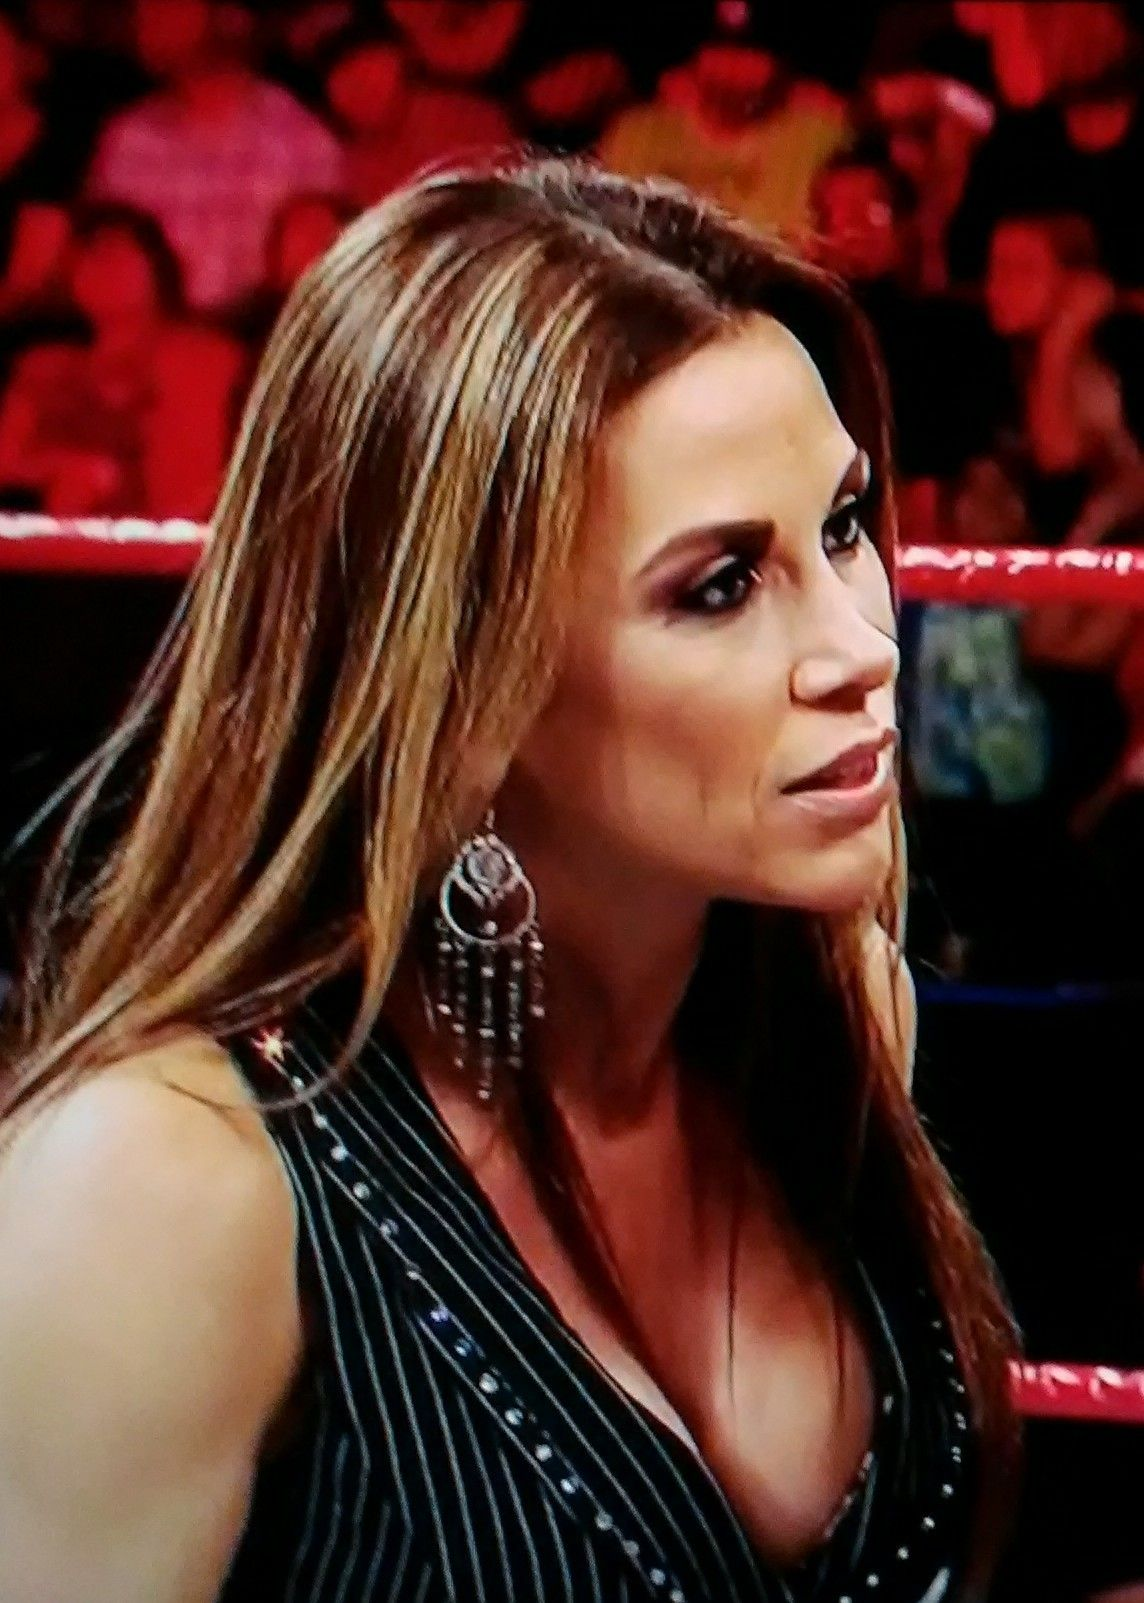 Wwe diva mickie james sex toys consider, that